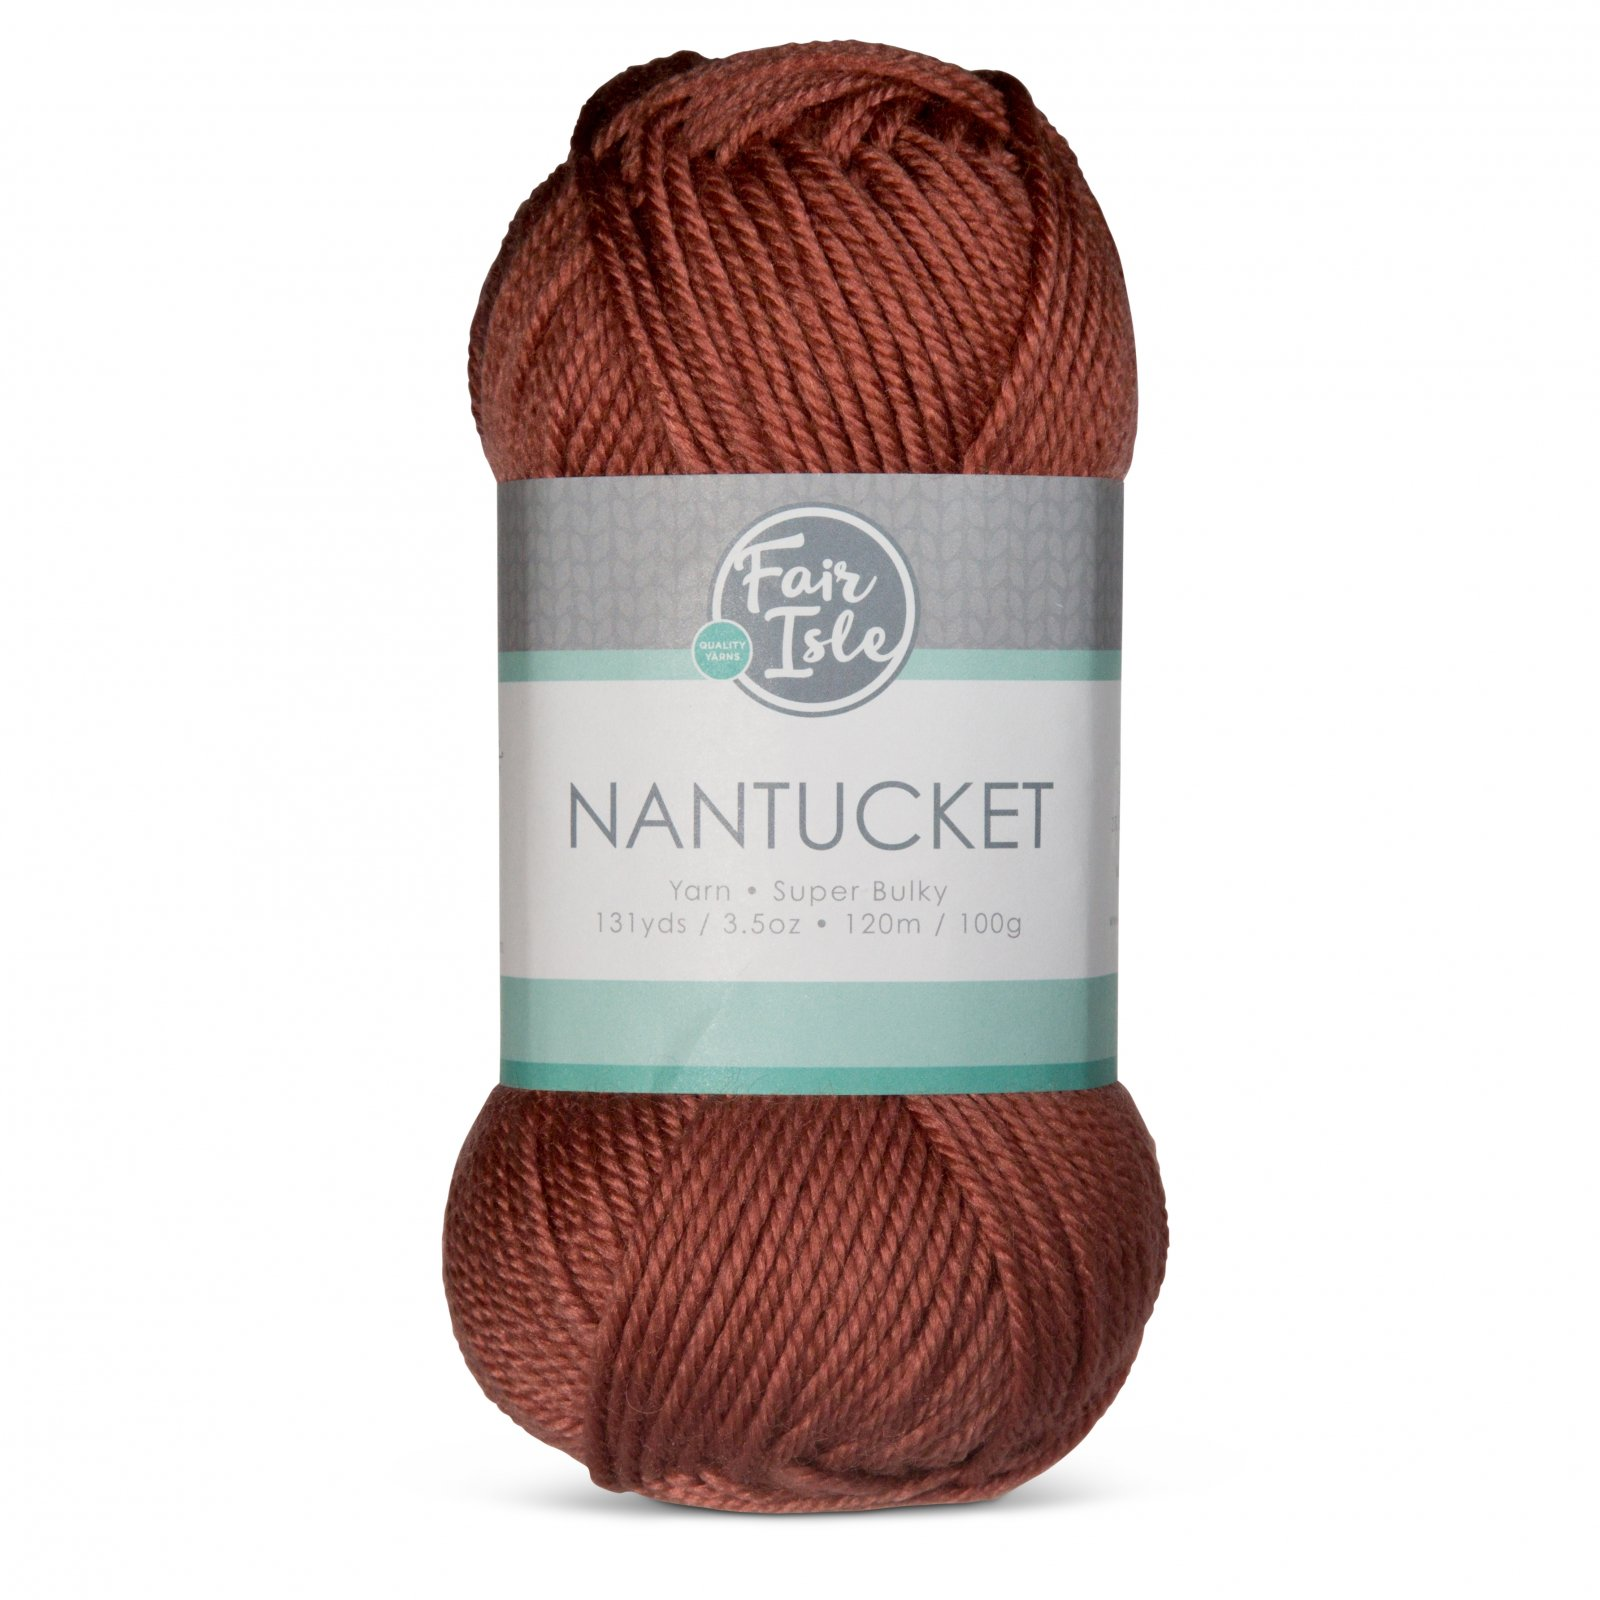 Nantucket Rhubarb